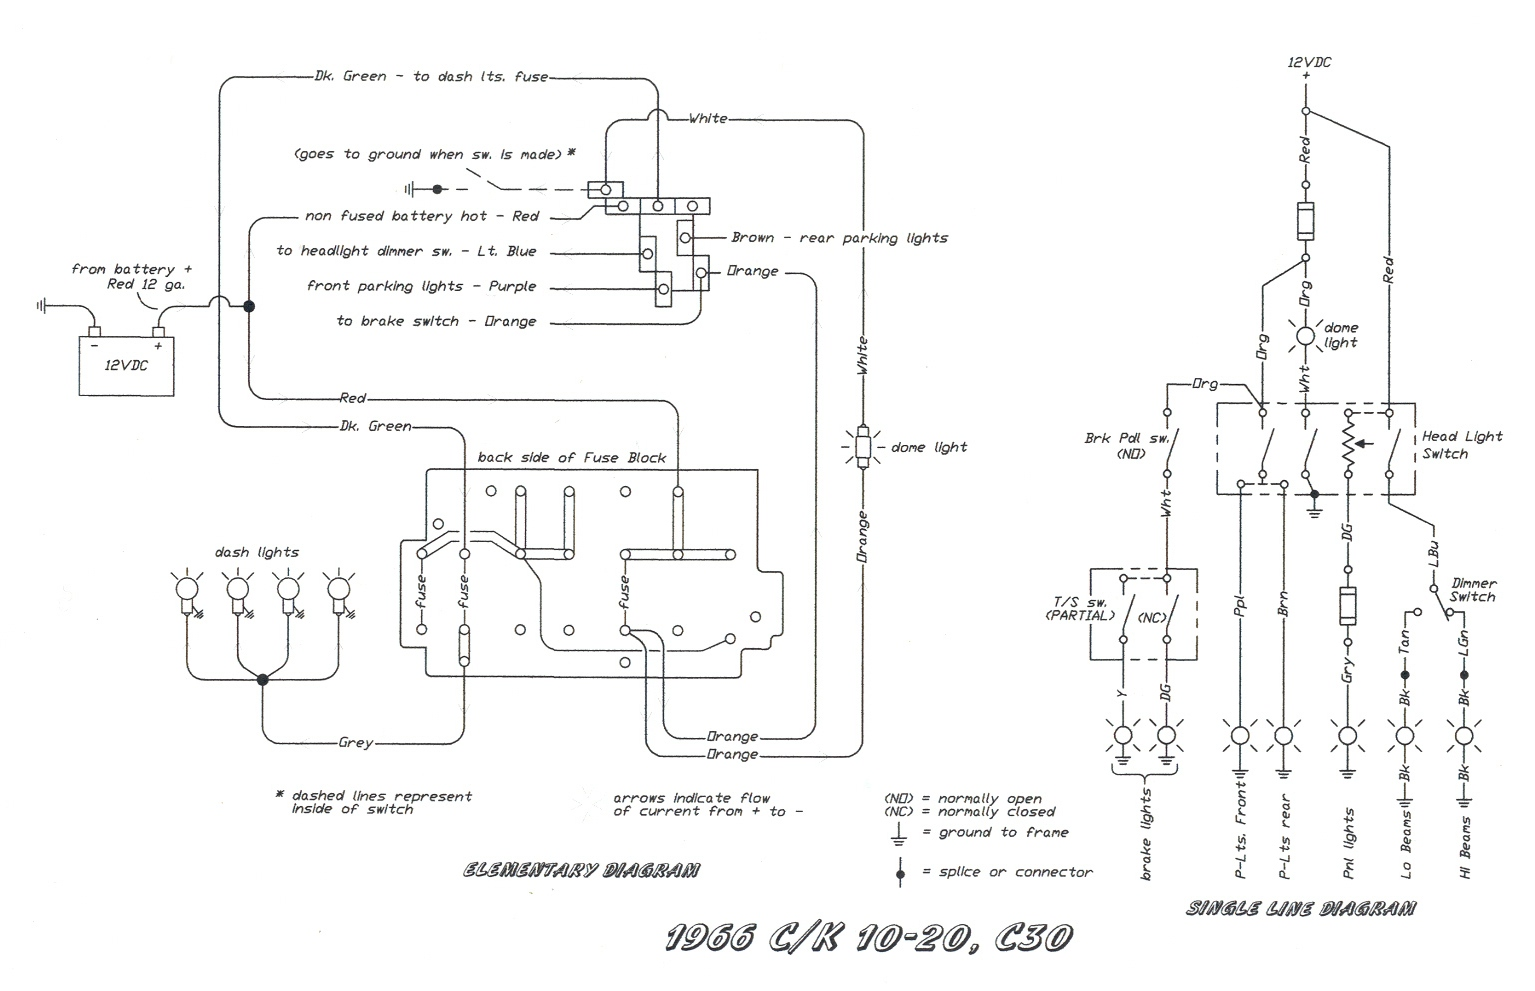 hight resolution of dimmer switch wiring diagram gmc wiring diagram blog 1959 gmc wiring diagram wiring diagram page dimmer